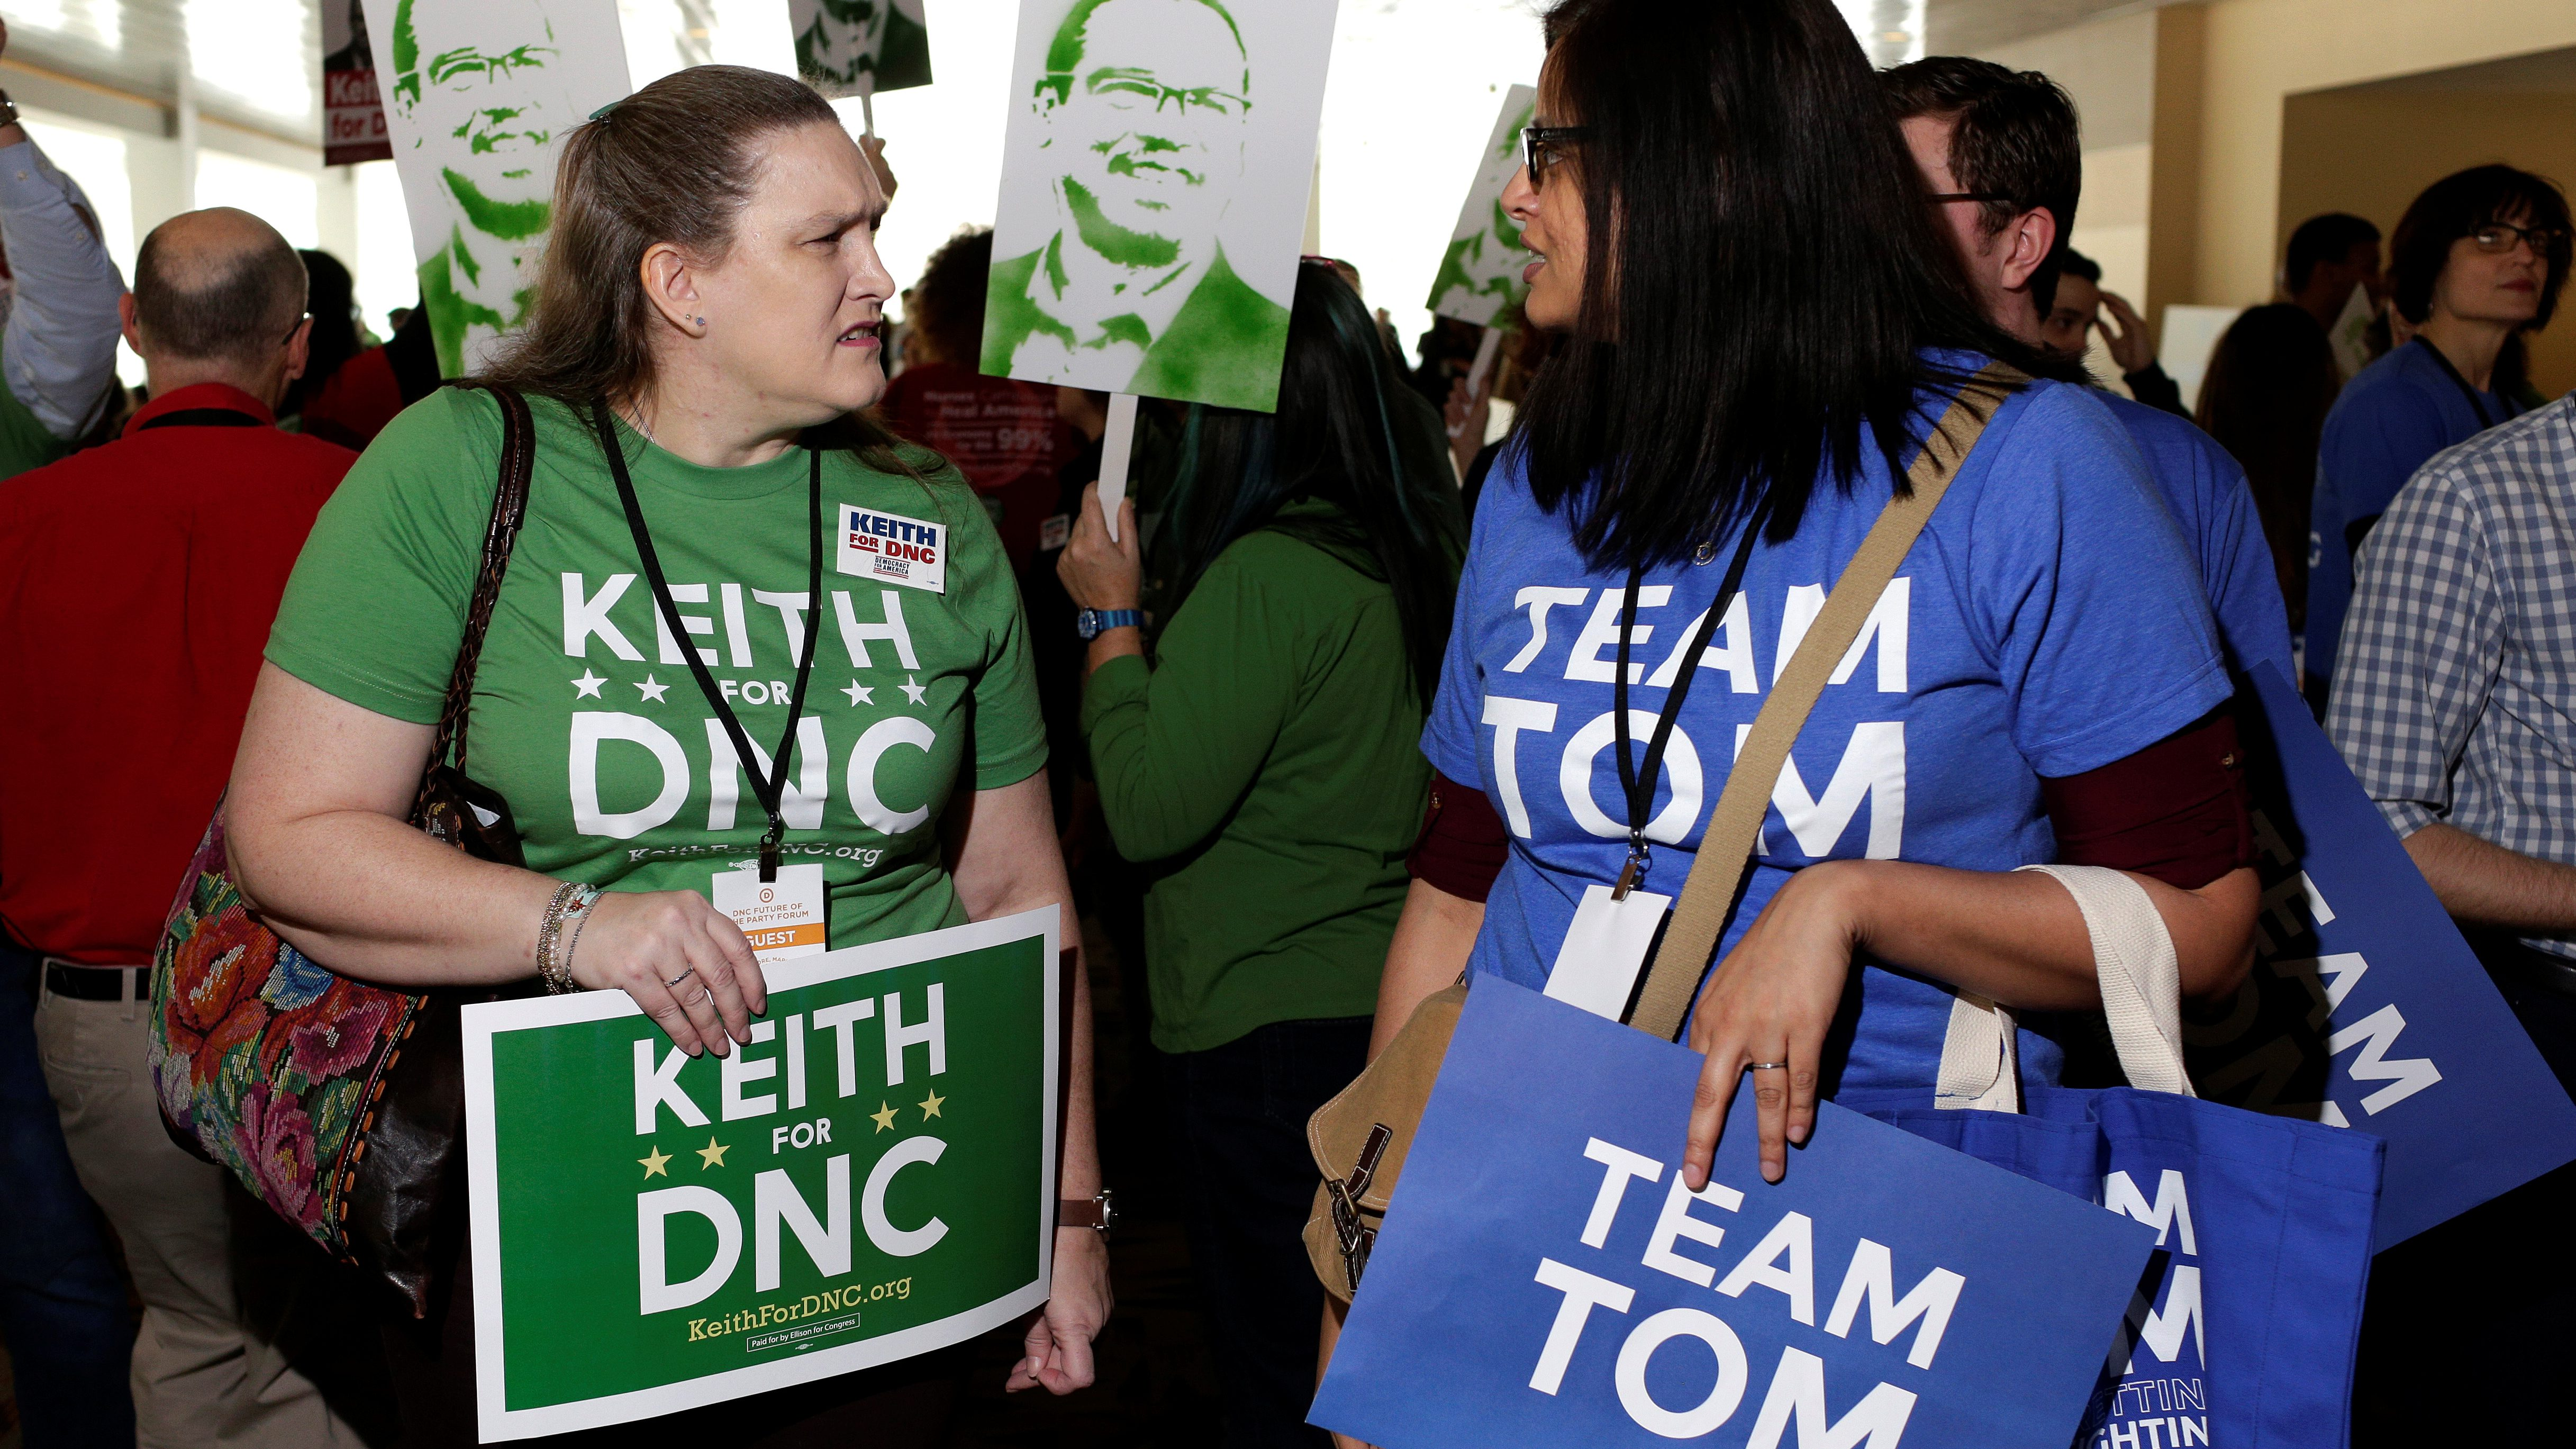 Supporters (L) of Rep. Keith Ellison (D-MN) and former Secretary of Labor Tom Perez, candidates for Democratic National Committee Chairman, speak to each other during a Democratic National Committee forum in Baltimore, Maryland, U.S. February 11, 2017.       - RTSY6ON